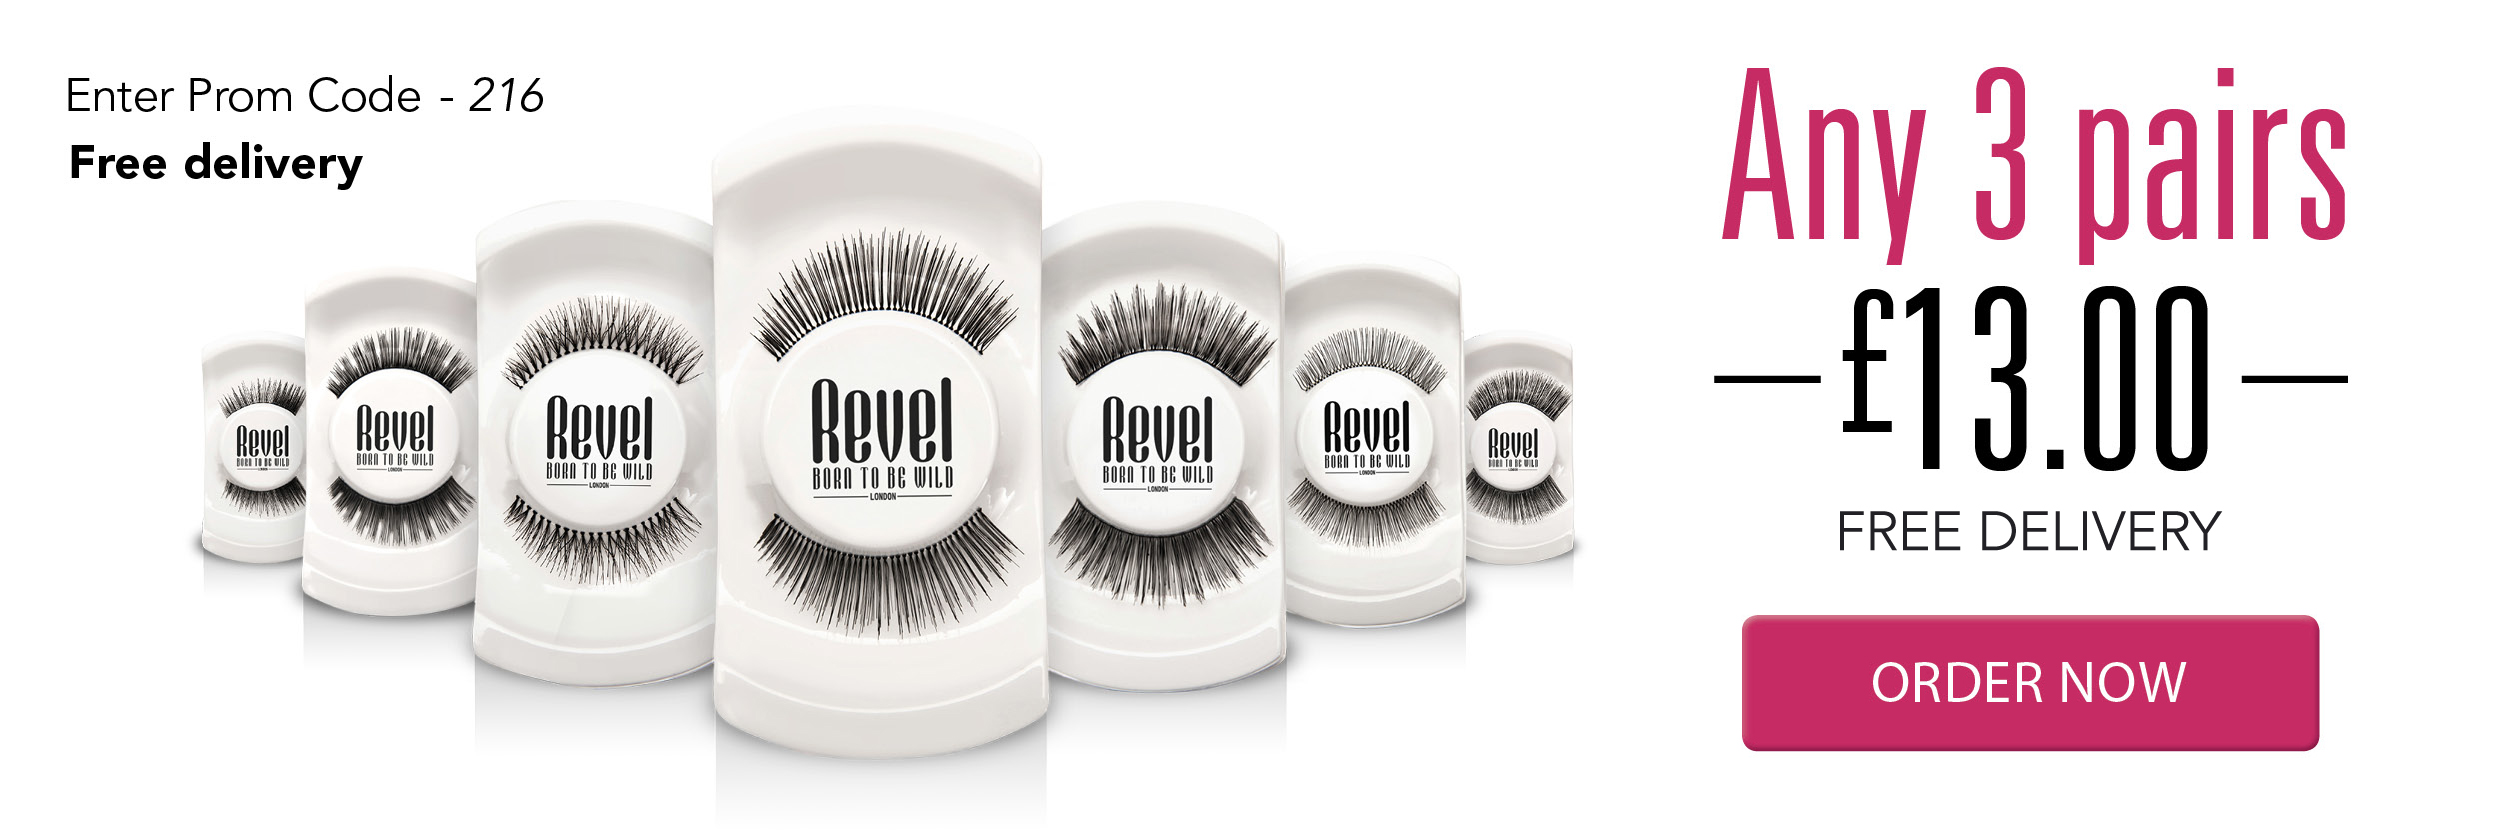 45aaea924ee Order Any 3 sets of strip lashes for the price of 2 only £13.00, offer  includes adhesive & free delivery, while stocks last.Check out using Promo  code:216.